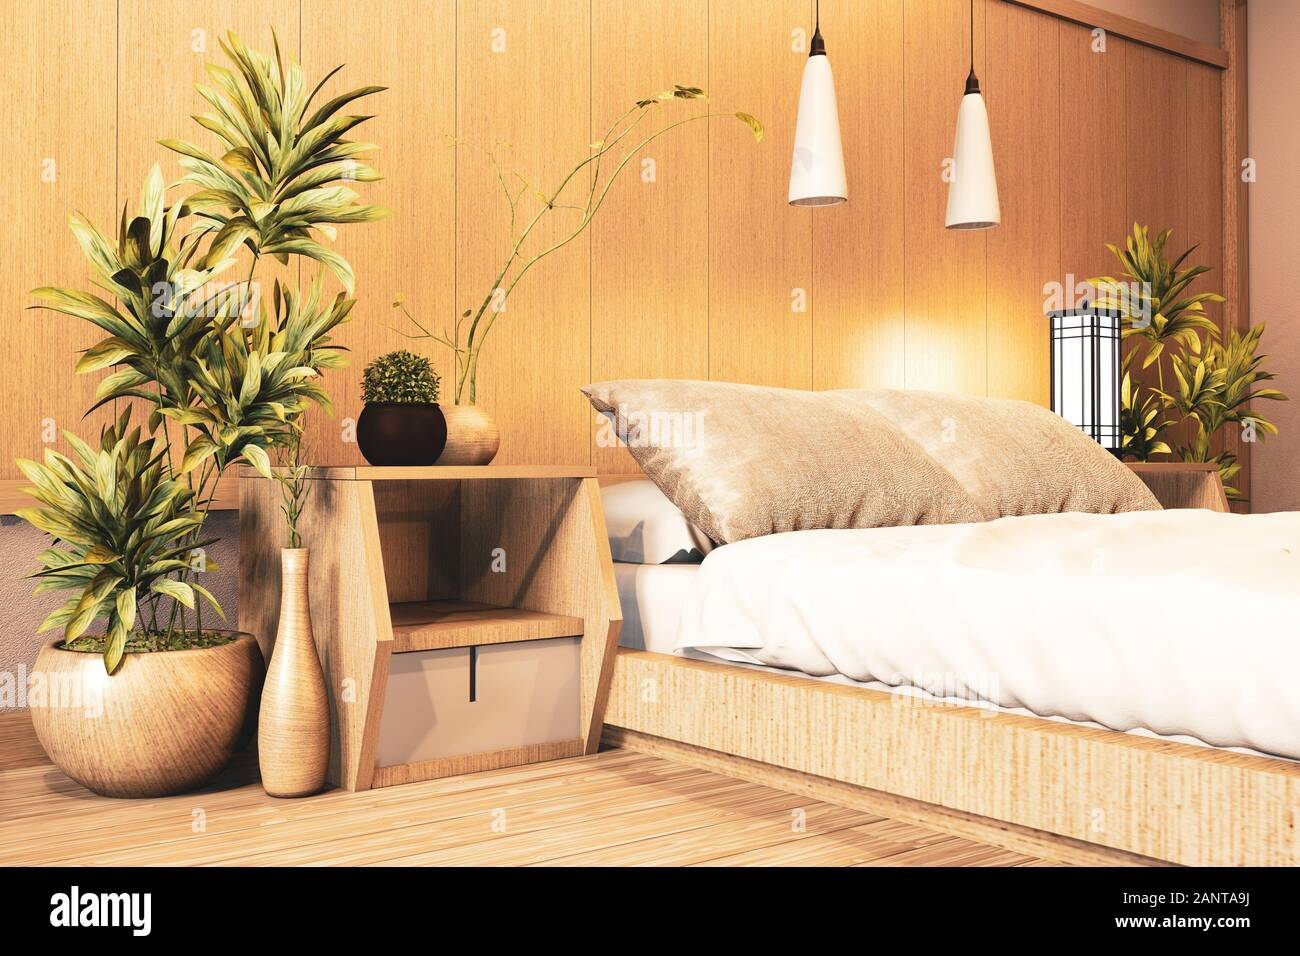 Interior Luxury Modern Japanese Style Bedroom Mock Up Designing The Most Beautiful 3d Rendering Stock Photo Alamy